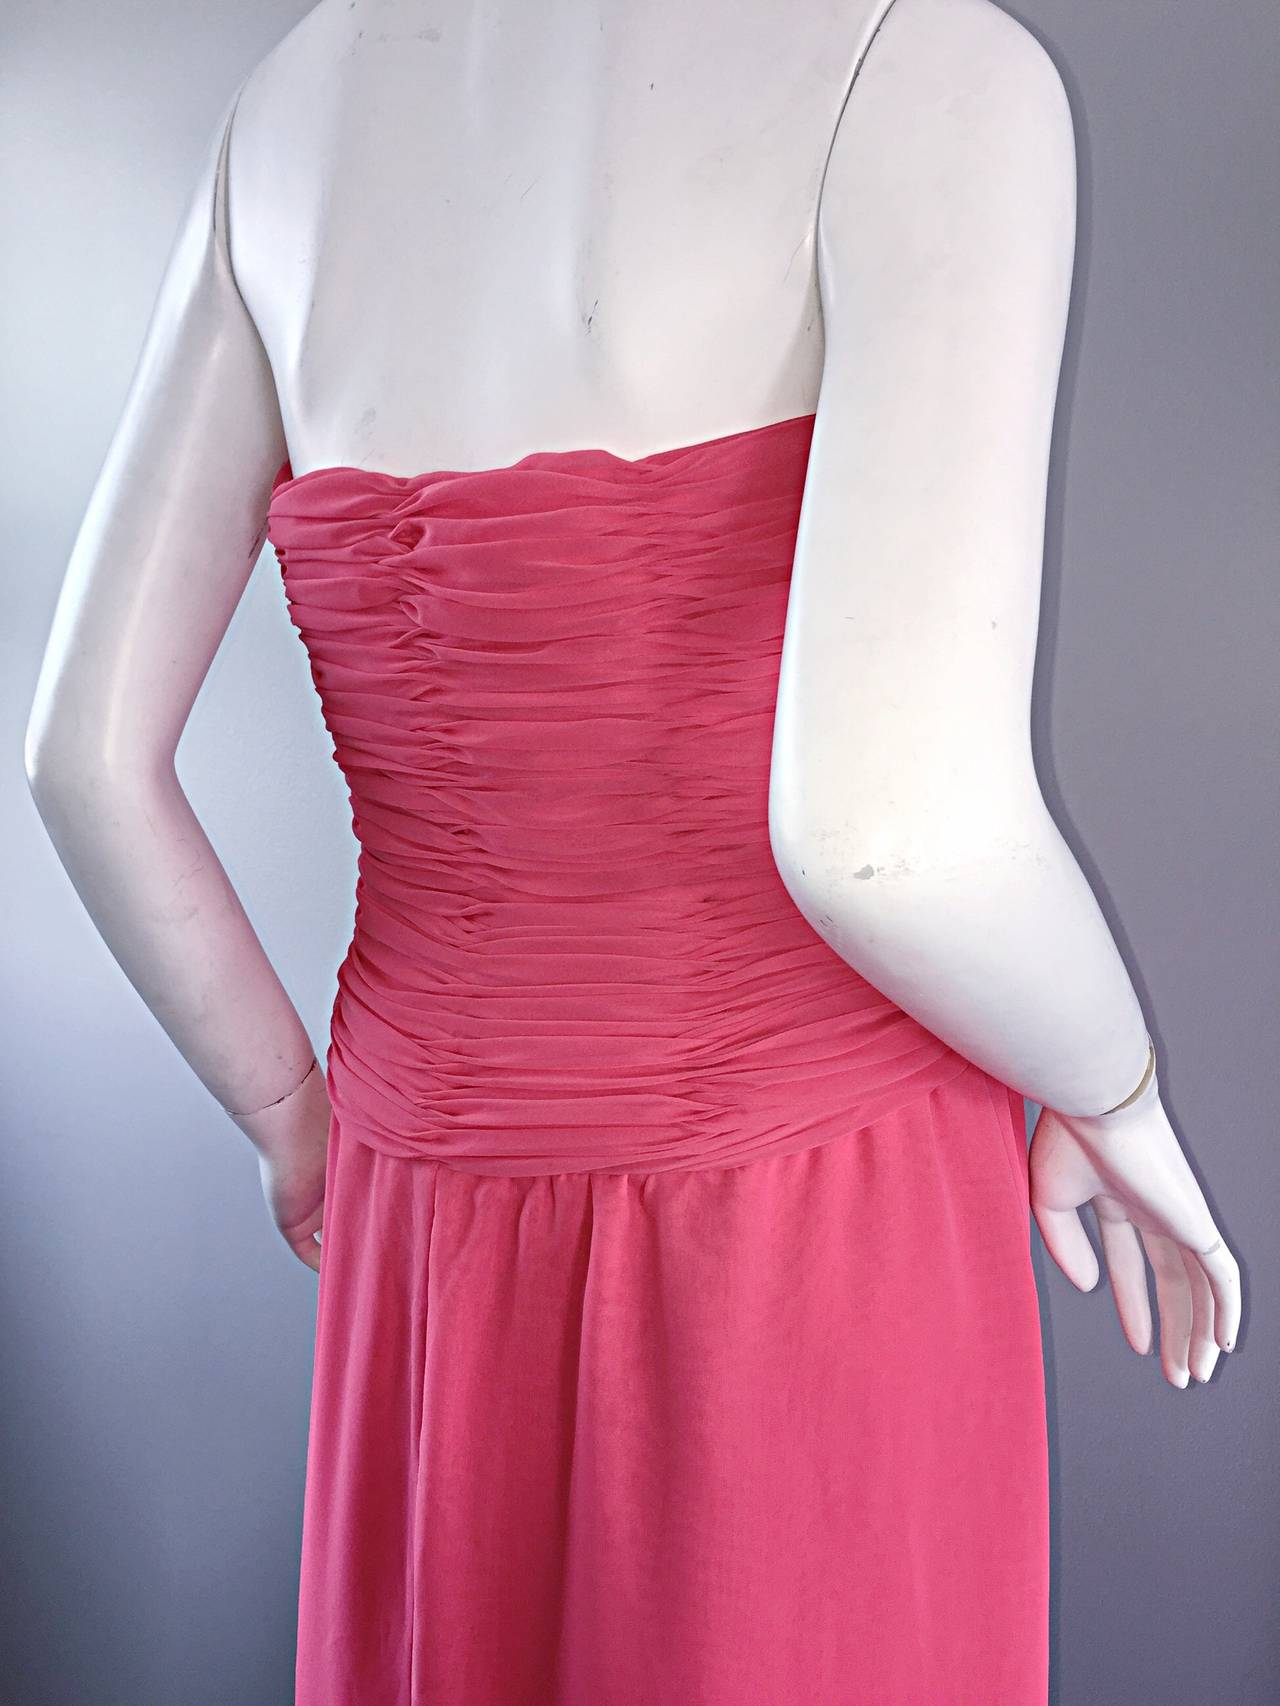 Victor Costa Coral Pink Strapless Flowy Knotted Vintage Cocktail Dress Size 8 10 5